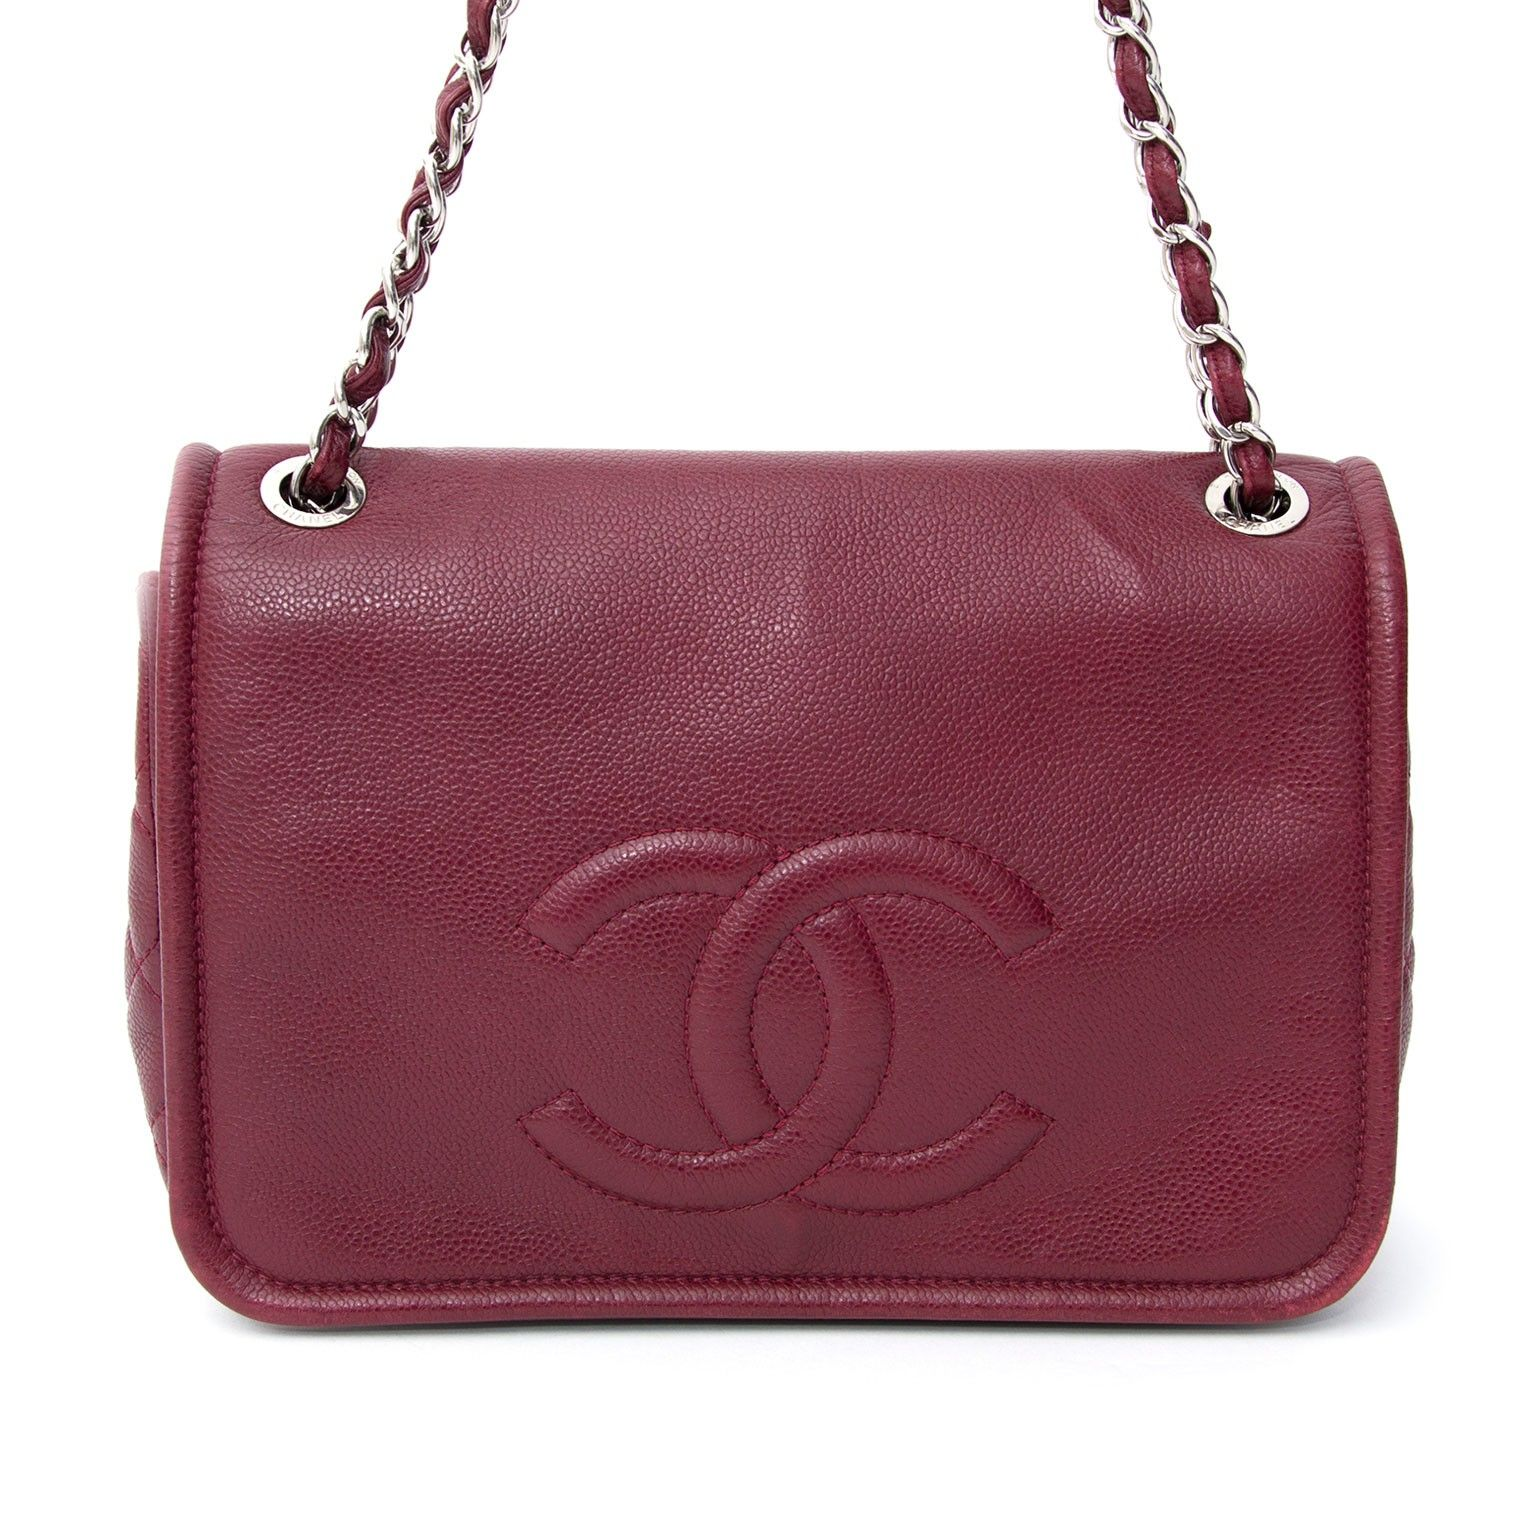 3ae56efa24ee Chanel Red Caviar Timeless CC Flap | We LOV Chanel | Chanel, Caviar, Red